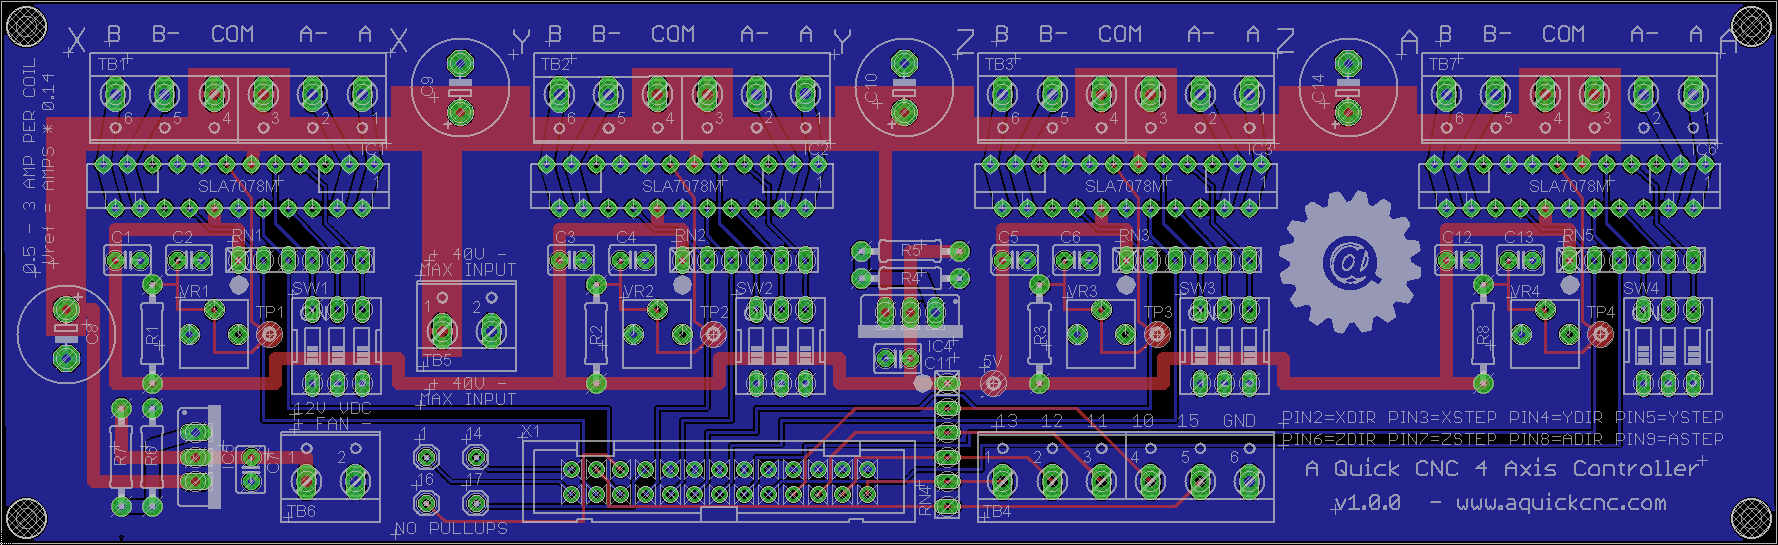 Cnc Usb Wiring Diagram Diy Trusted Controller Board Schematic Enthusiast Diagrams U2022 Mesa 7i77 Wire